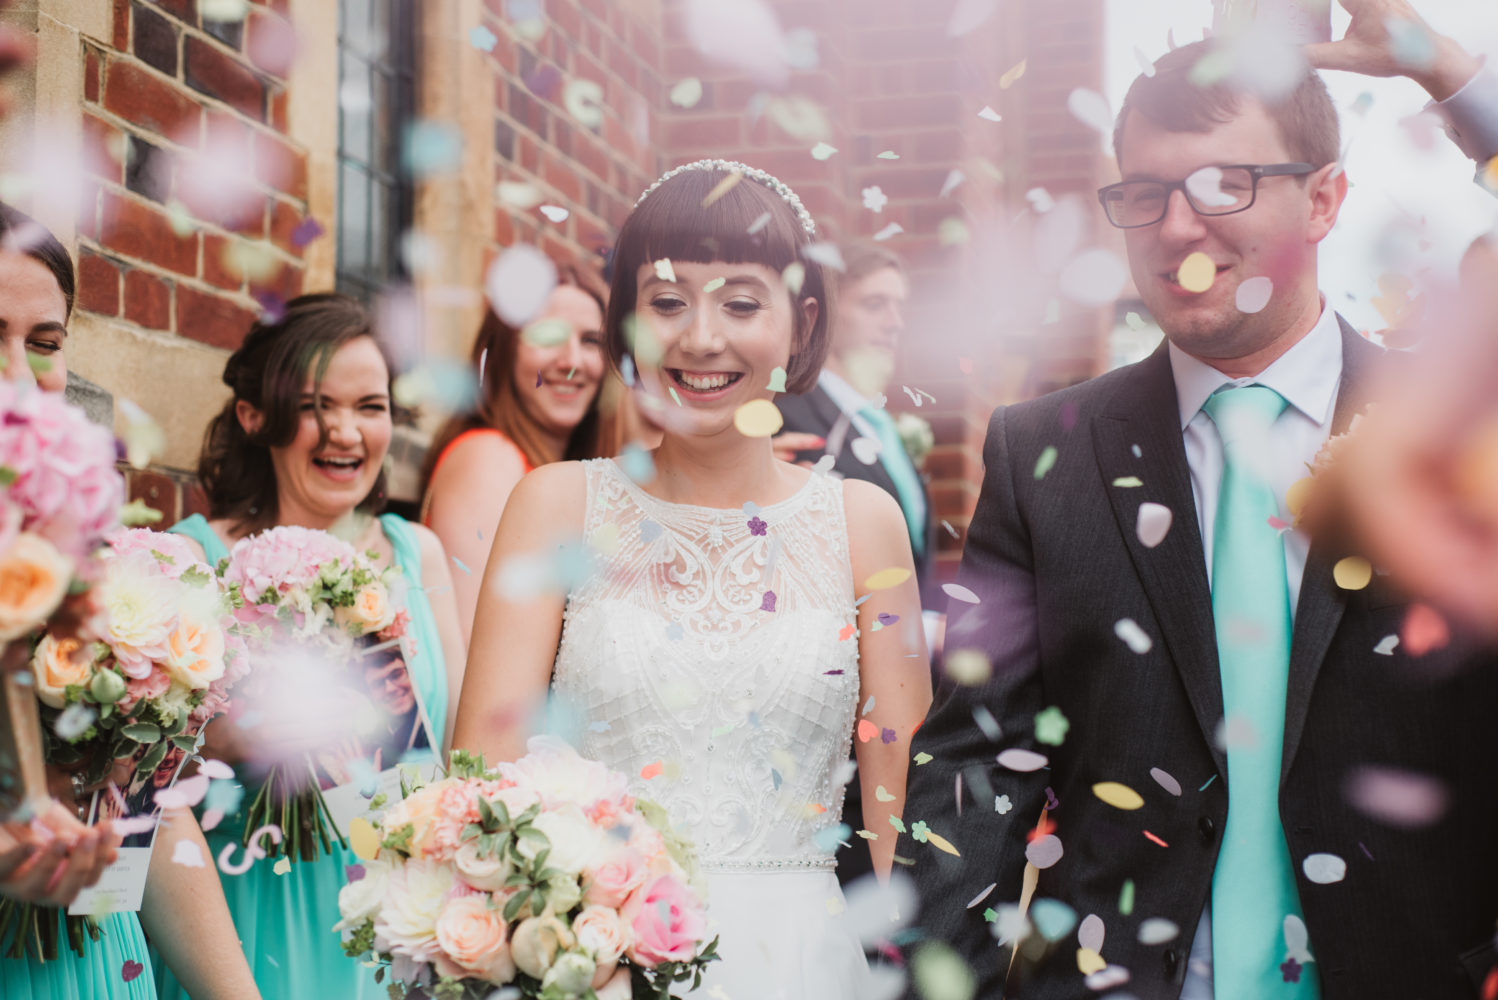 colourful giant confetti throwing over bride and groom